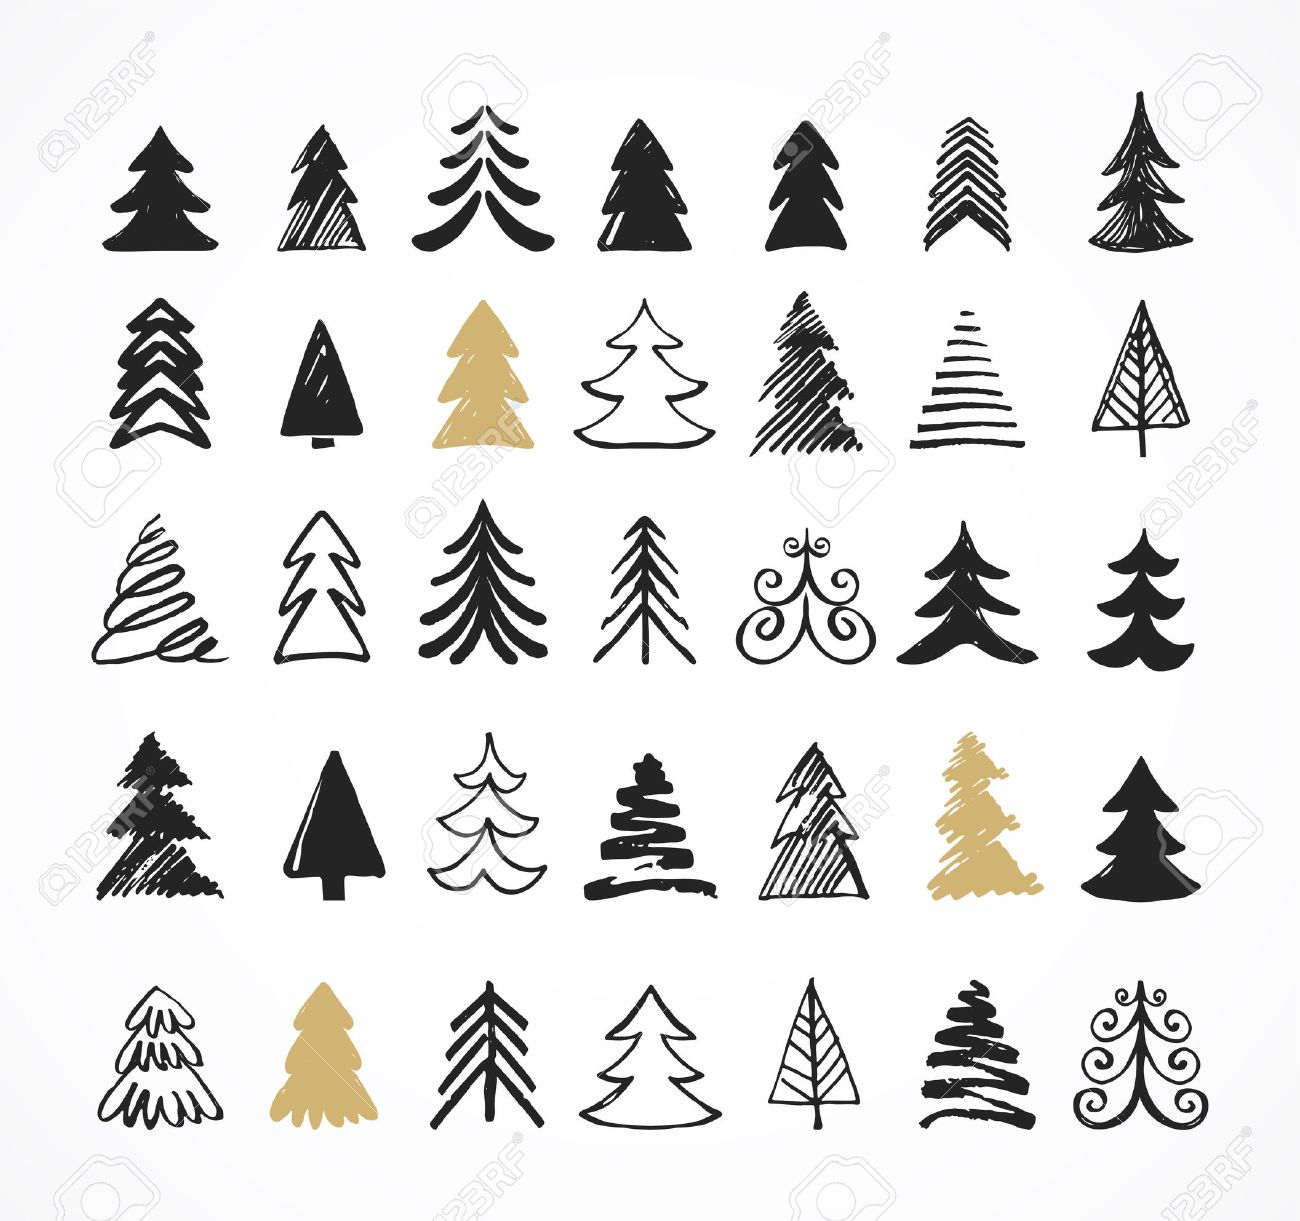 Christmas Tree Icons.Hand Drawn Christmas Tree Icons Doodles And Sketches